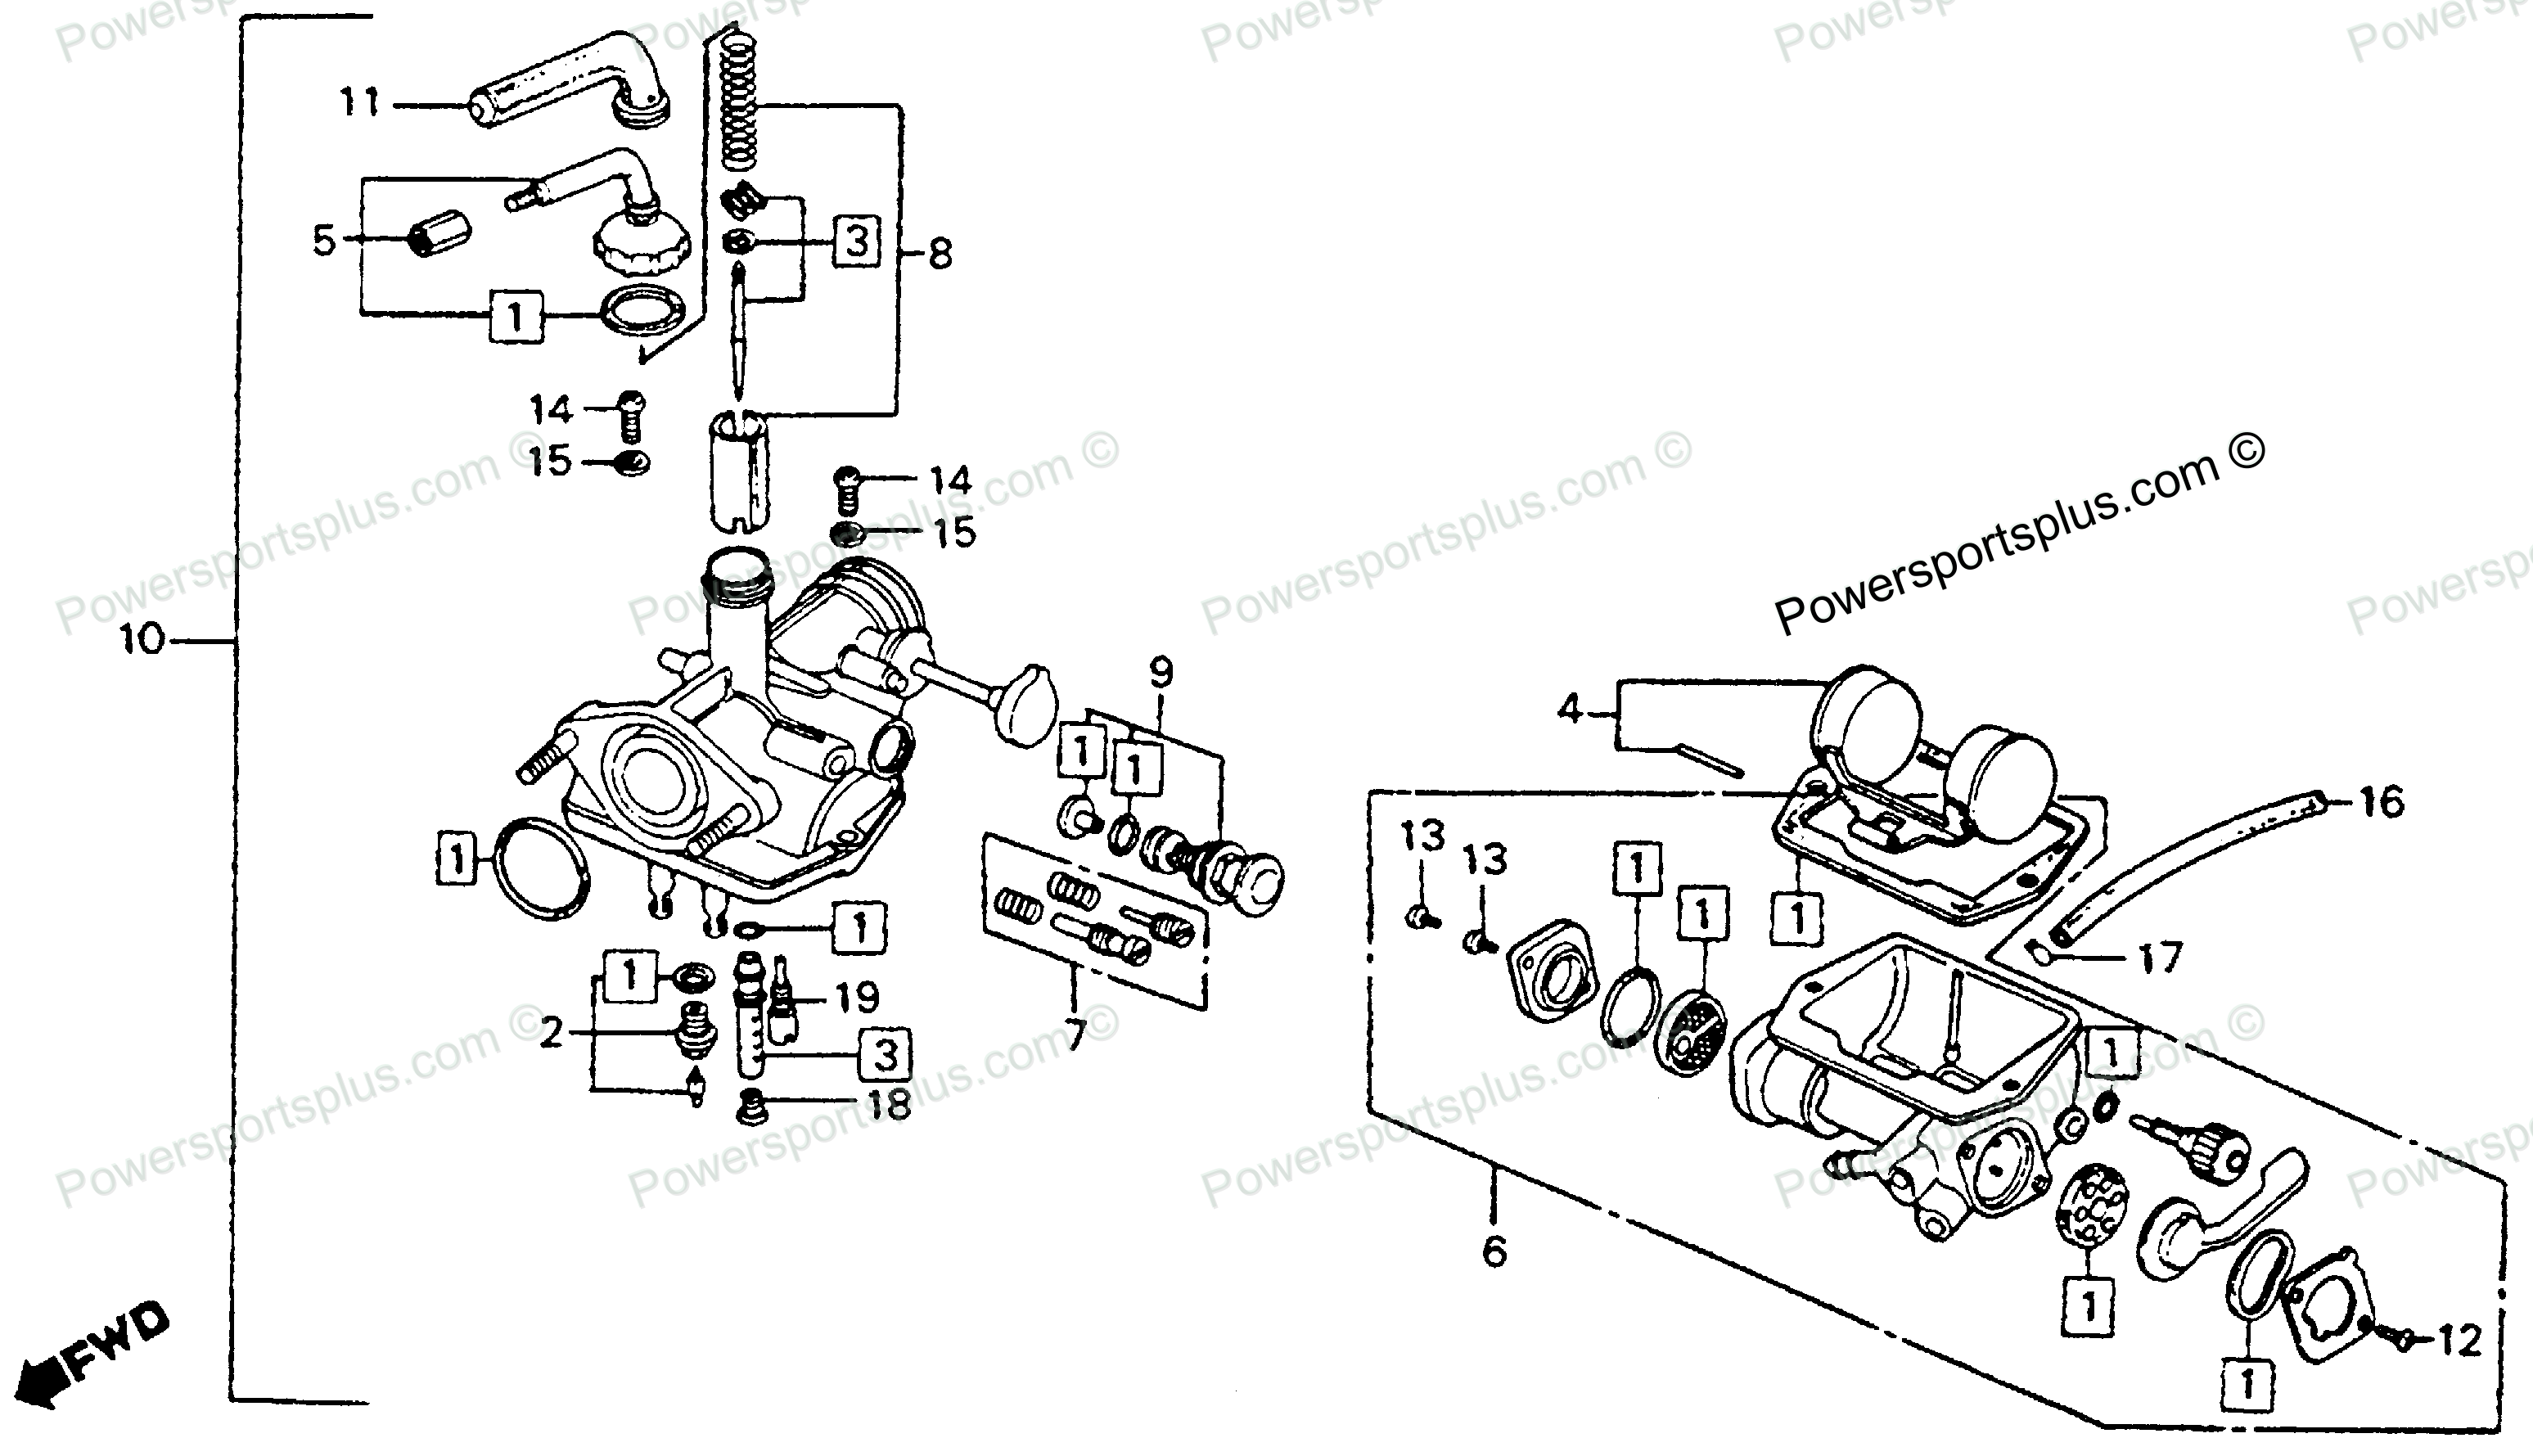 0efb18283ae24d7a2627632be070cf5c diagram of honda motorcycle parts 1976 ct90 a carburetor k6 77 1974 honda ct90 wiring diagram at mifinder.co